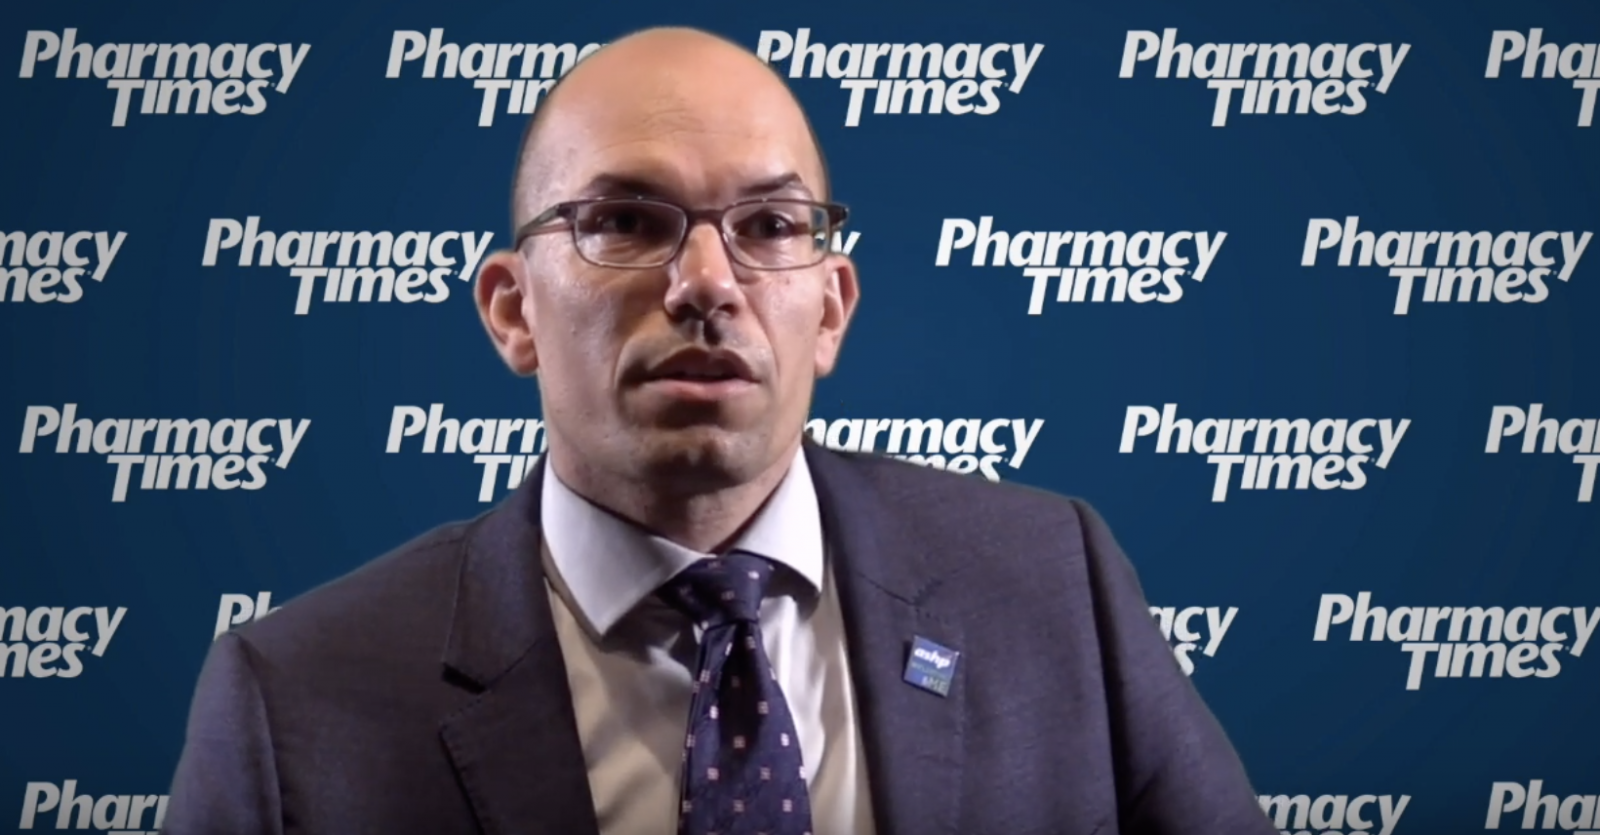 Drug Pricing, Generic Competition a High Priority for ASHP